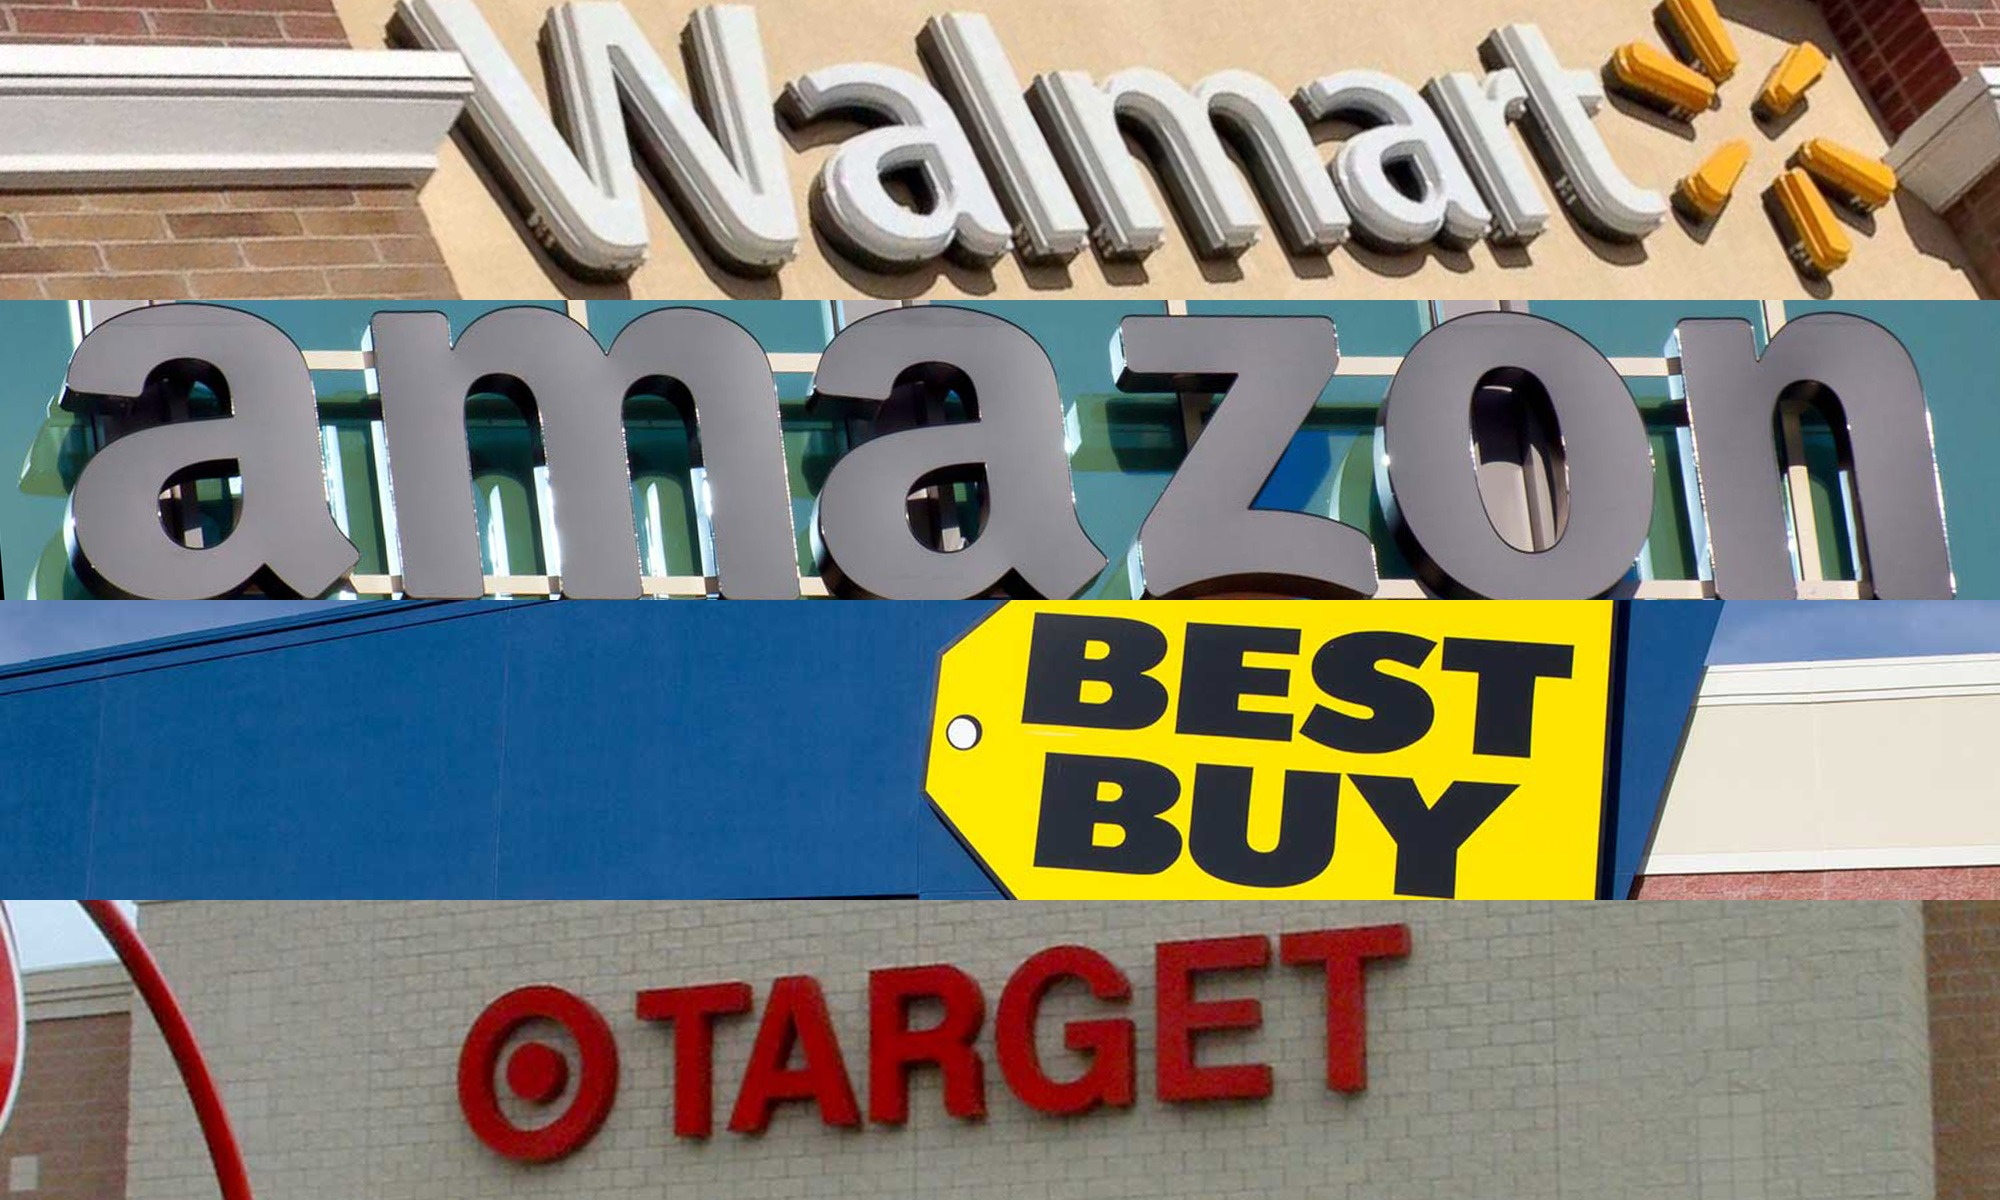 Amazon vs. Walmart vs. Best Buy vs. Target: Find Out The Best Return Policy